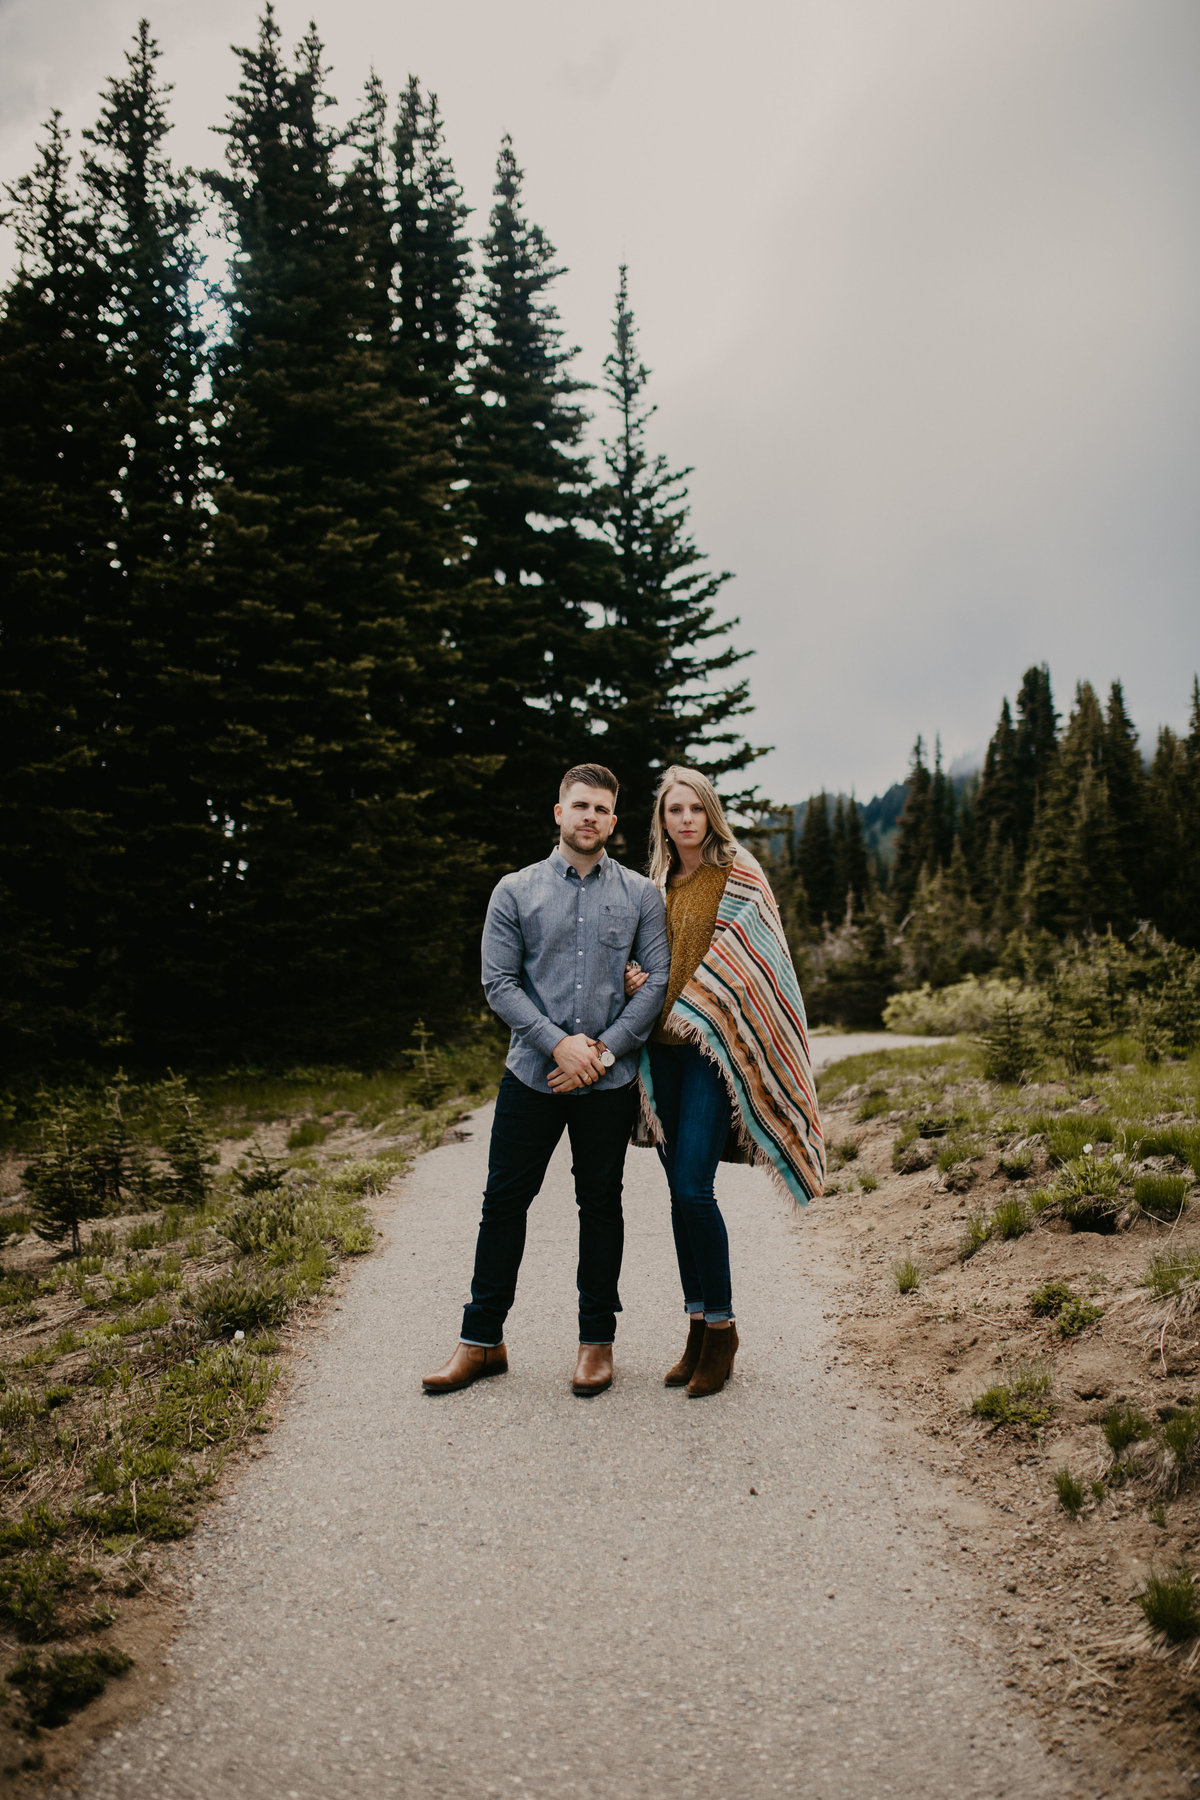 Marnie_Cornell_Photography_Engagement_Mount_Rainier_RK-70